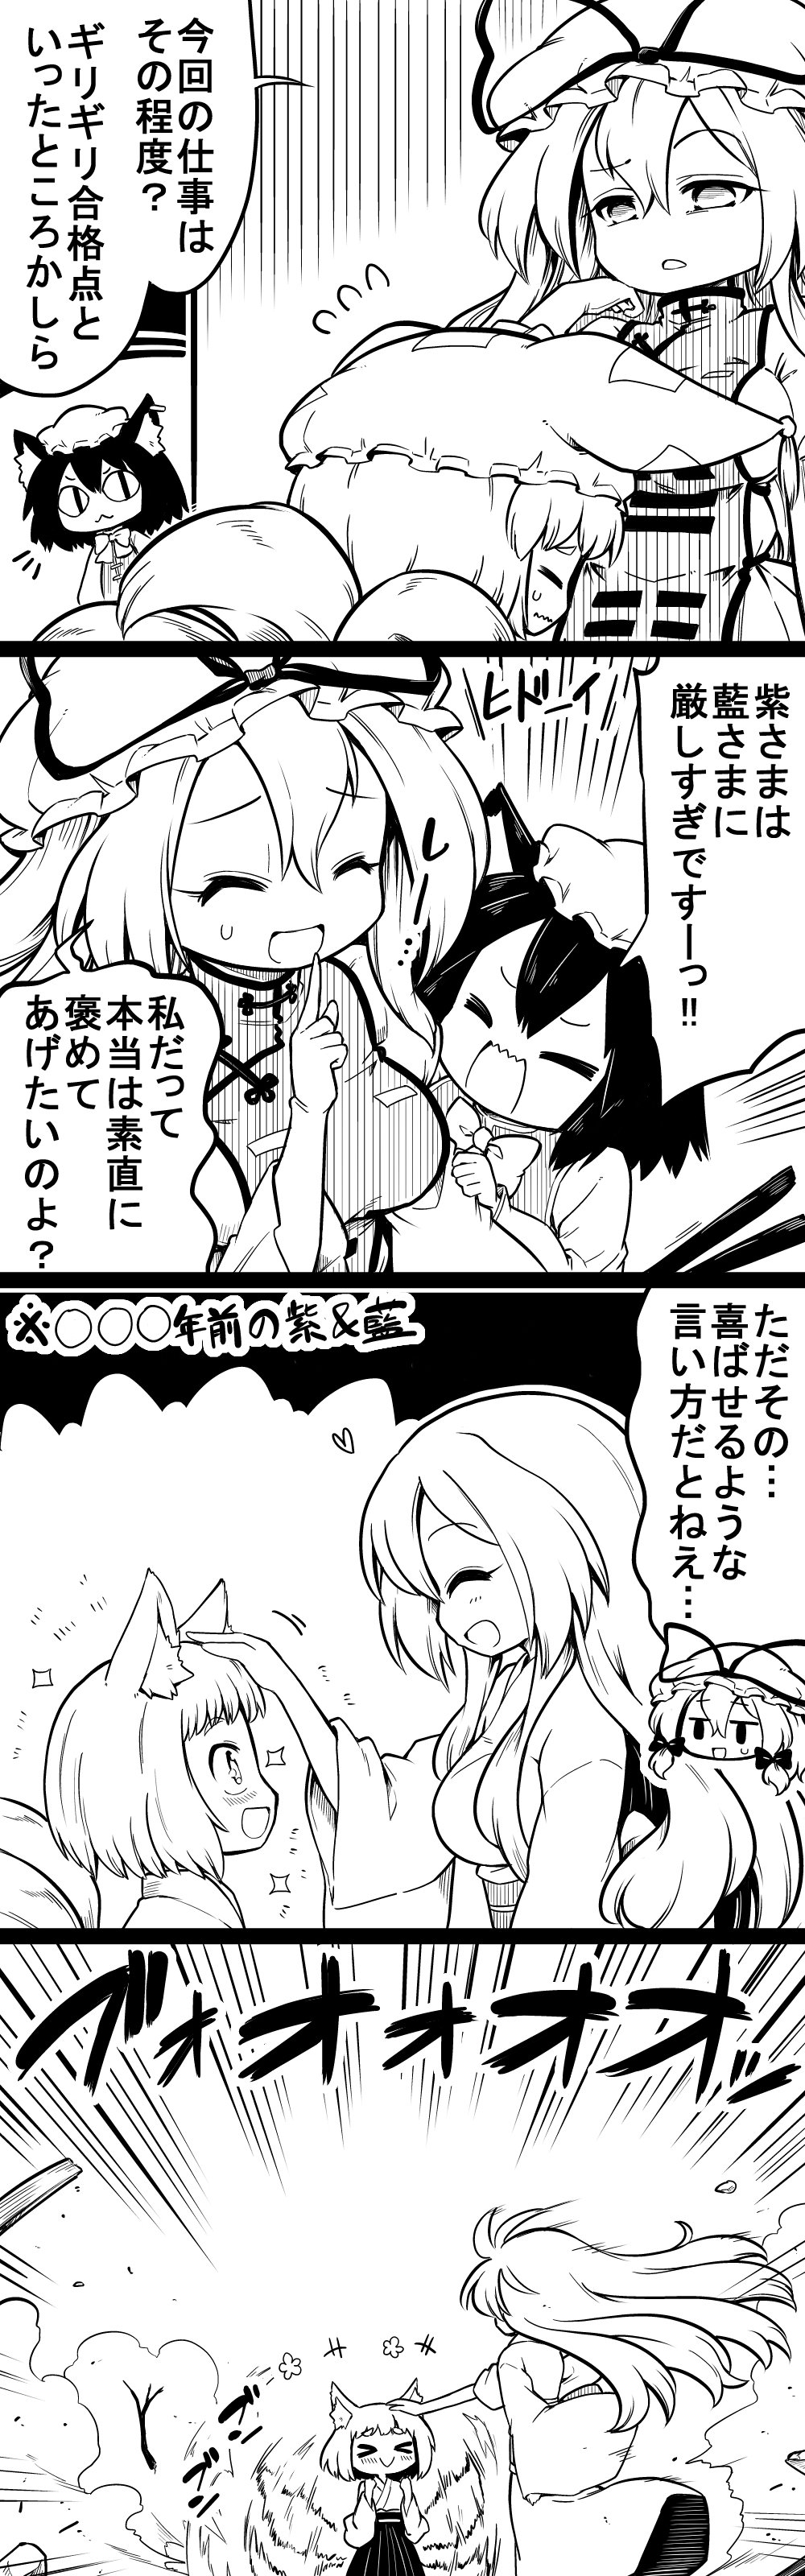 >_< +++ 3girls 4koma :3 =_= absurdres animal_ears bow bowtie breasts cat_ears chen comic commentary_request diffraction_spikes eyebrows_visible_through_hair finger_to_mouth flower_(symbol) flying_sweatdrops fox_ears fox_tail futa_(nabezoko) gloves greyscale hair_between_eyes hair_bow hakama hand_on_own_cheek hat hat_ribbon heart highres japanese_clothes jewelry kimono long_hair long_sleeves mob_cap monochrome multiple_girls multiple_tails open_mouth petting pillow_hat ribbon rock short_hair single_earring slit_pupils smile star sweat tail tail_wagging touhou translation_request tree tunic very_long_hair wavy_mouth wide_sleeves wind yakumo_ran yakumo_yukari younger